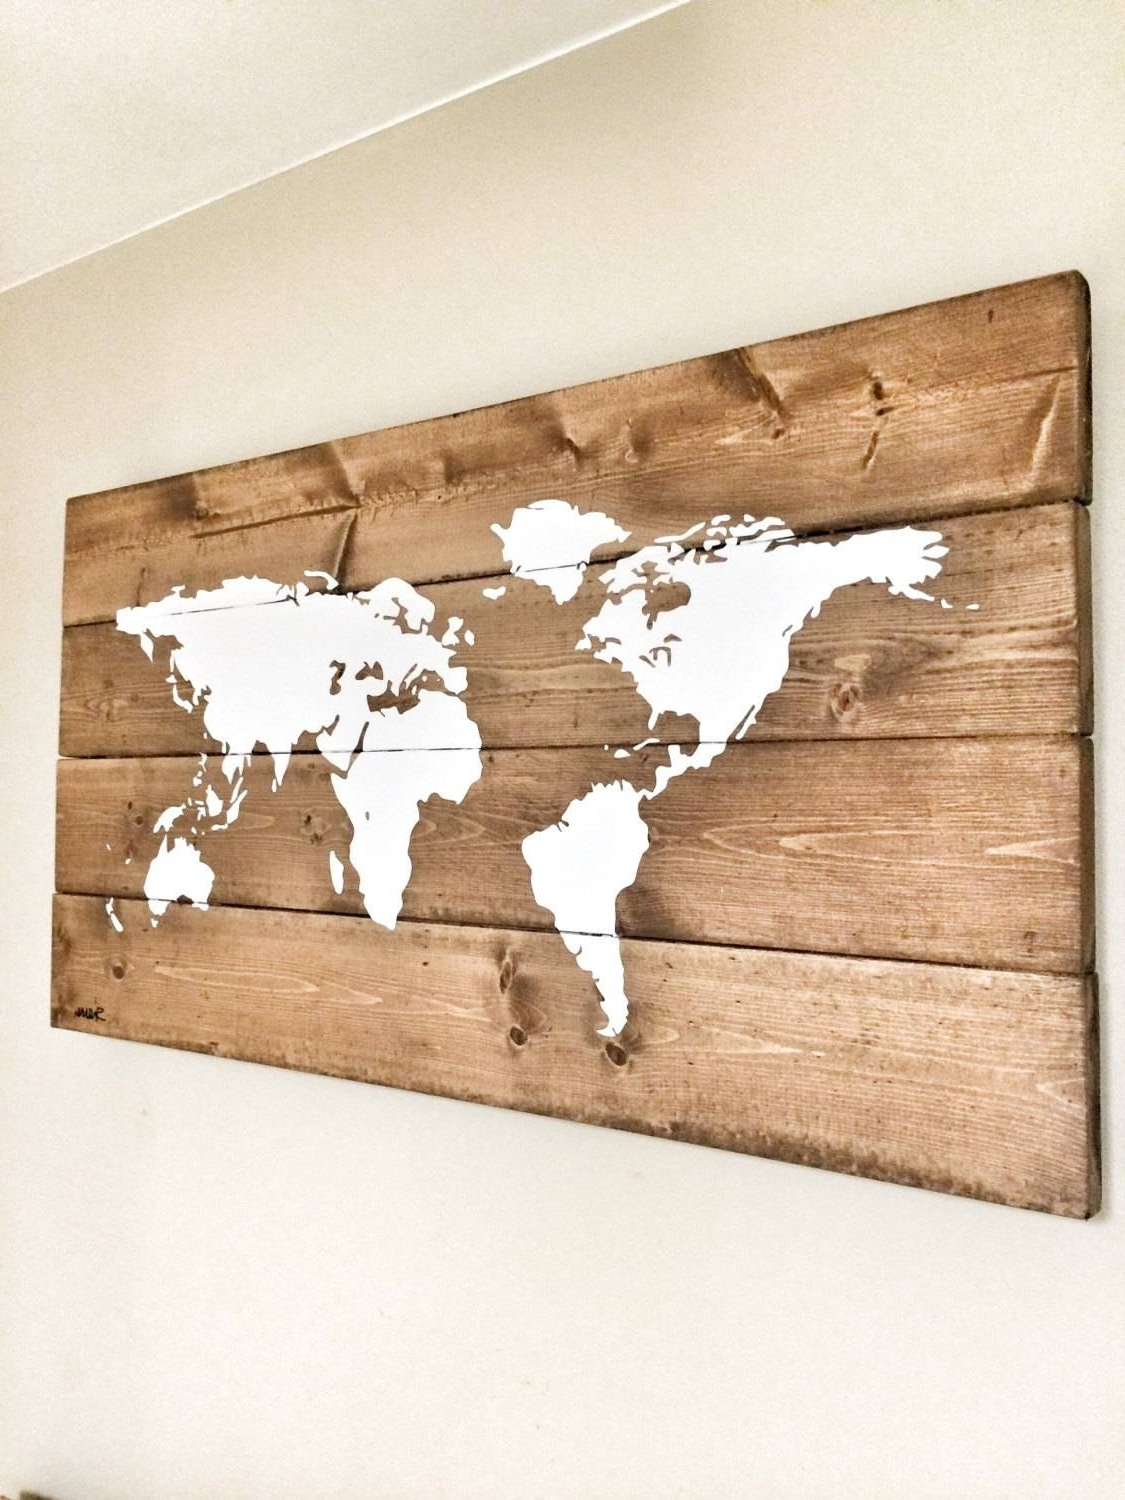 Most Recent 20 The Best Wood Map Wall Art. Map Of Countries (View 14 of 15)